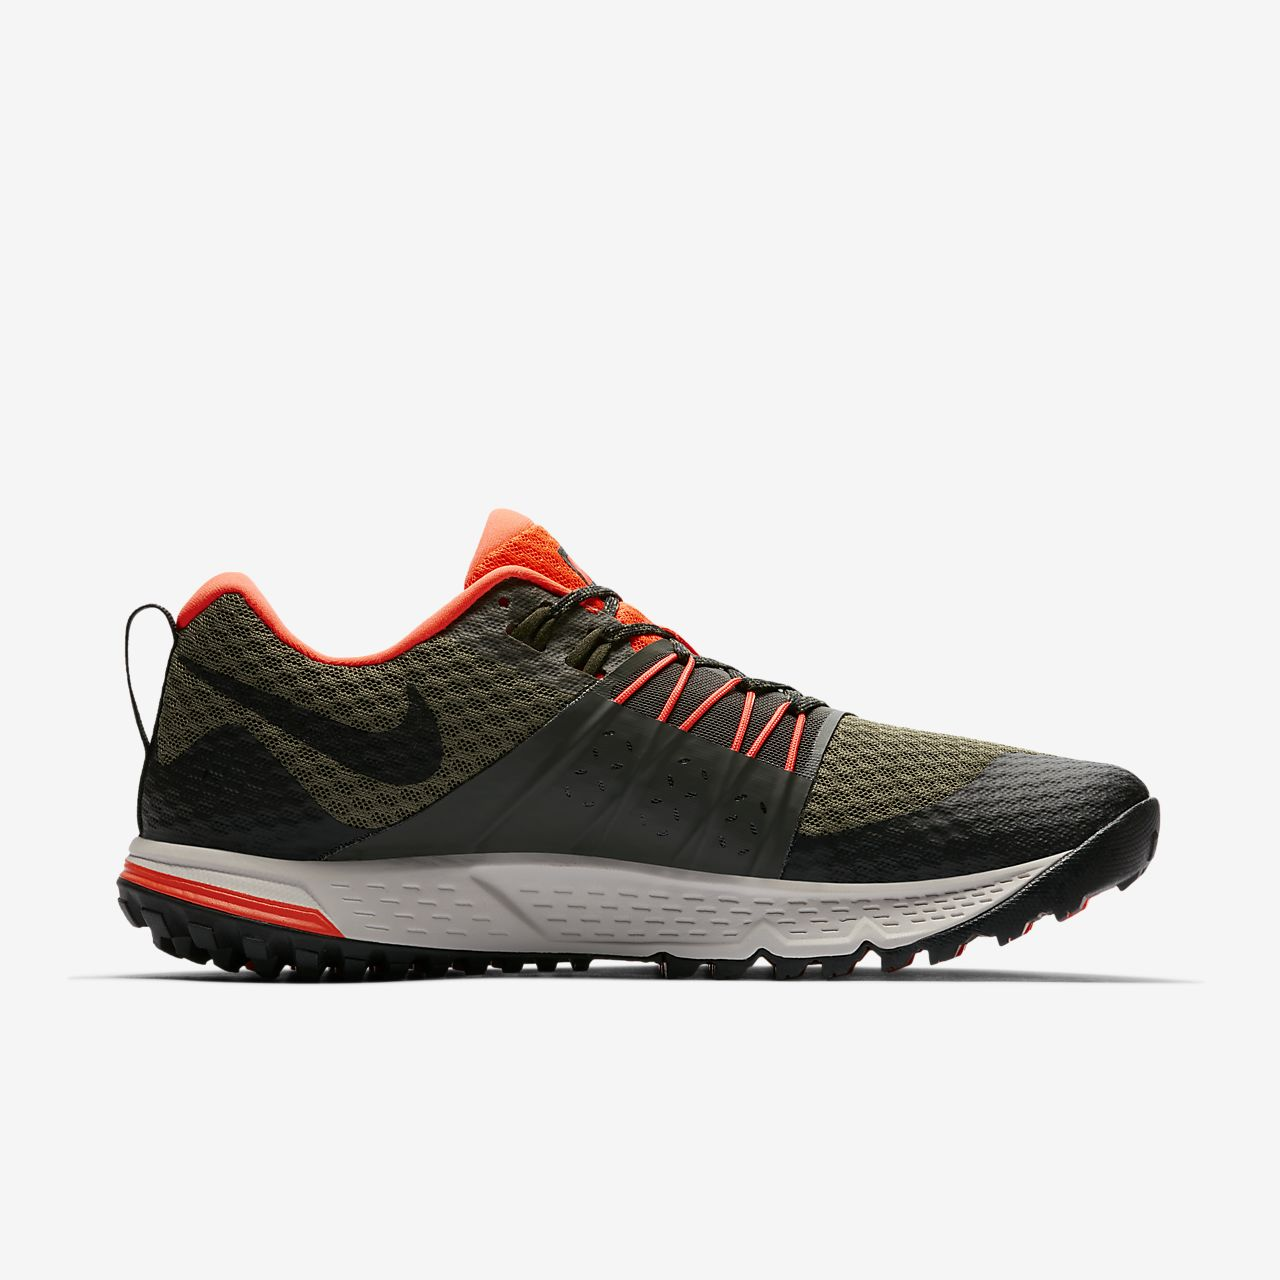 nike pegasus 25 mens nz